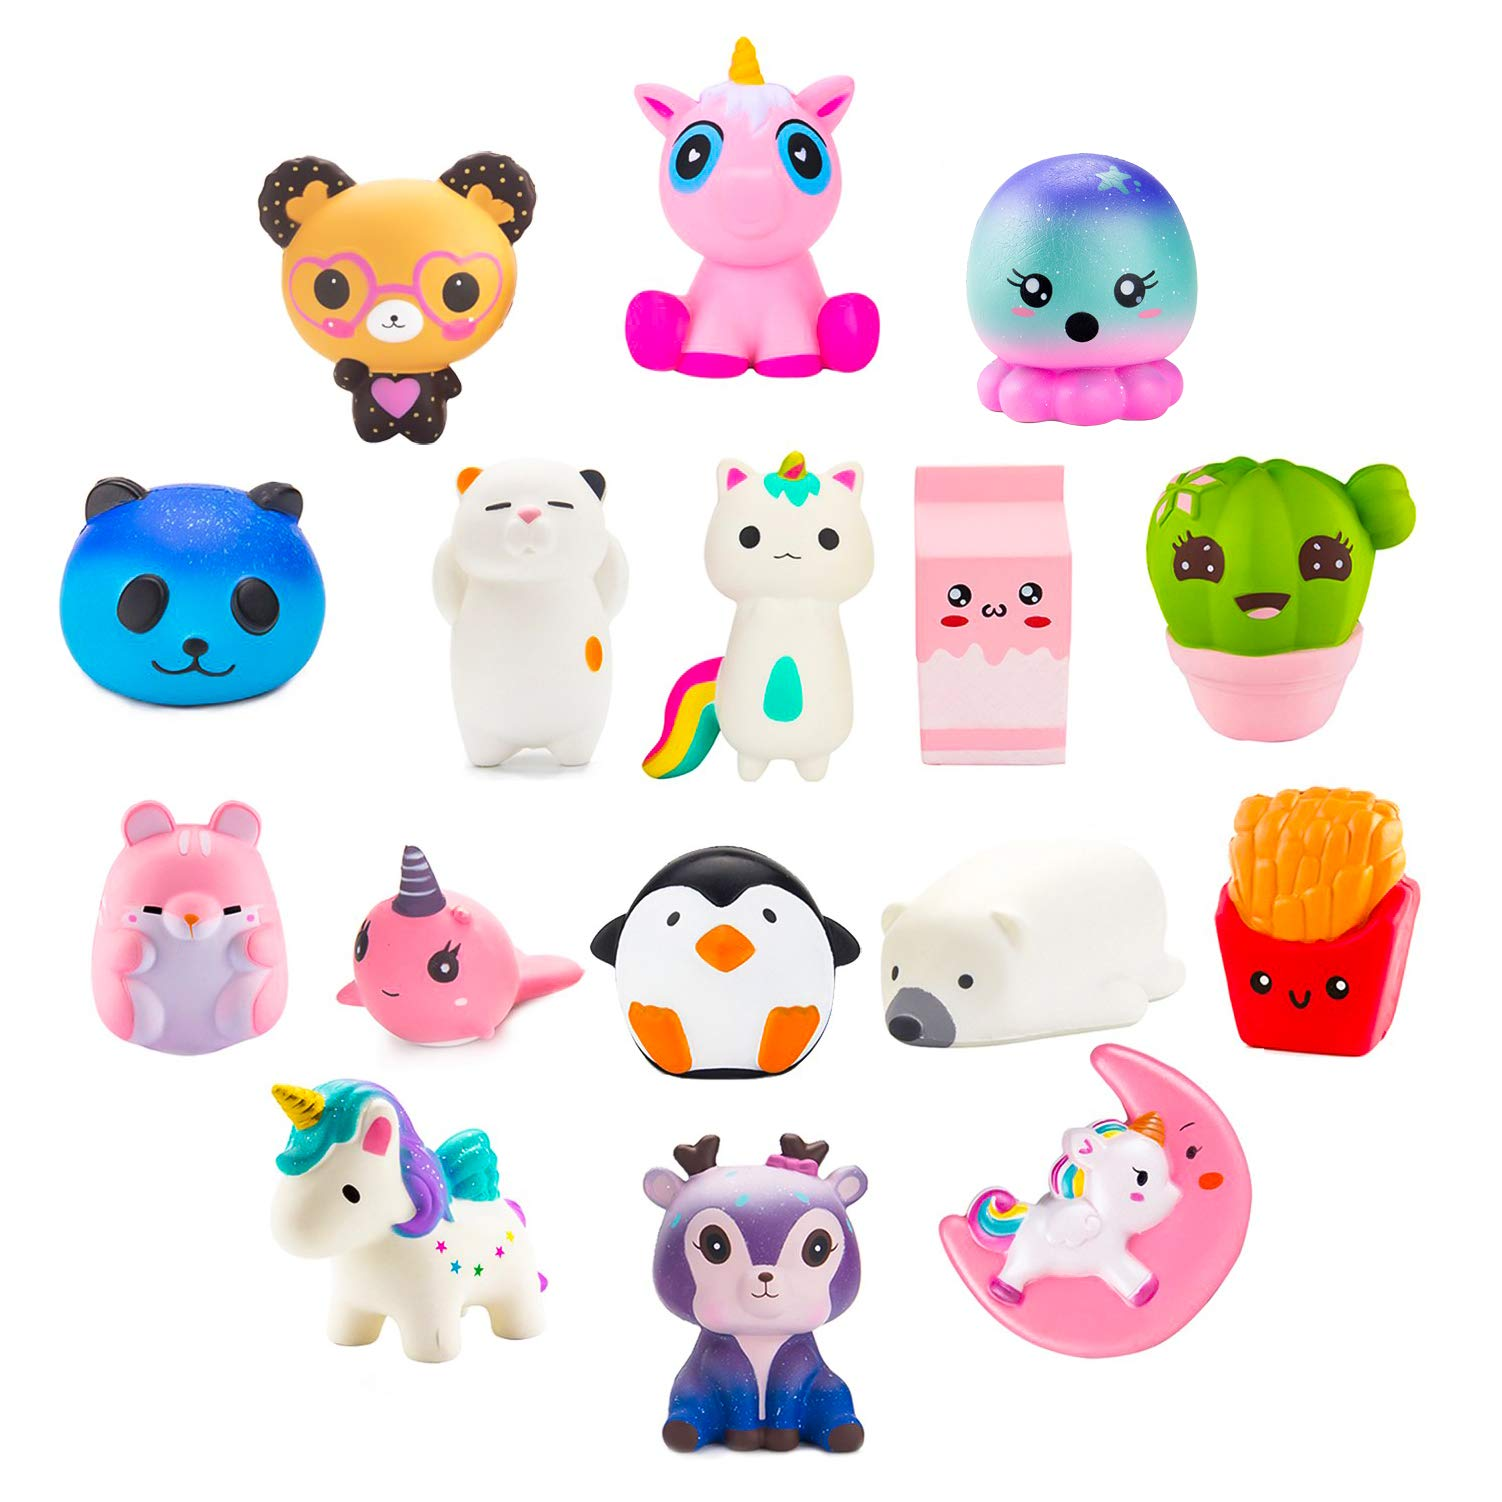 BeYumi Slow Rising Toy, Unicorn, Panda, Deer, Cat Squishy Toy, Kawaii Jumbo 10 Pcs Cream Scented Simulation Cute Animal & Food Squeeze Toys for Collection Gift, Decorative props Large or Stress Relief by BeYumi